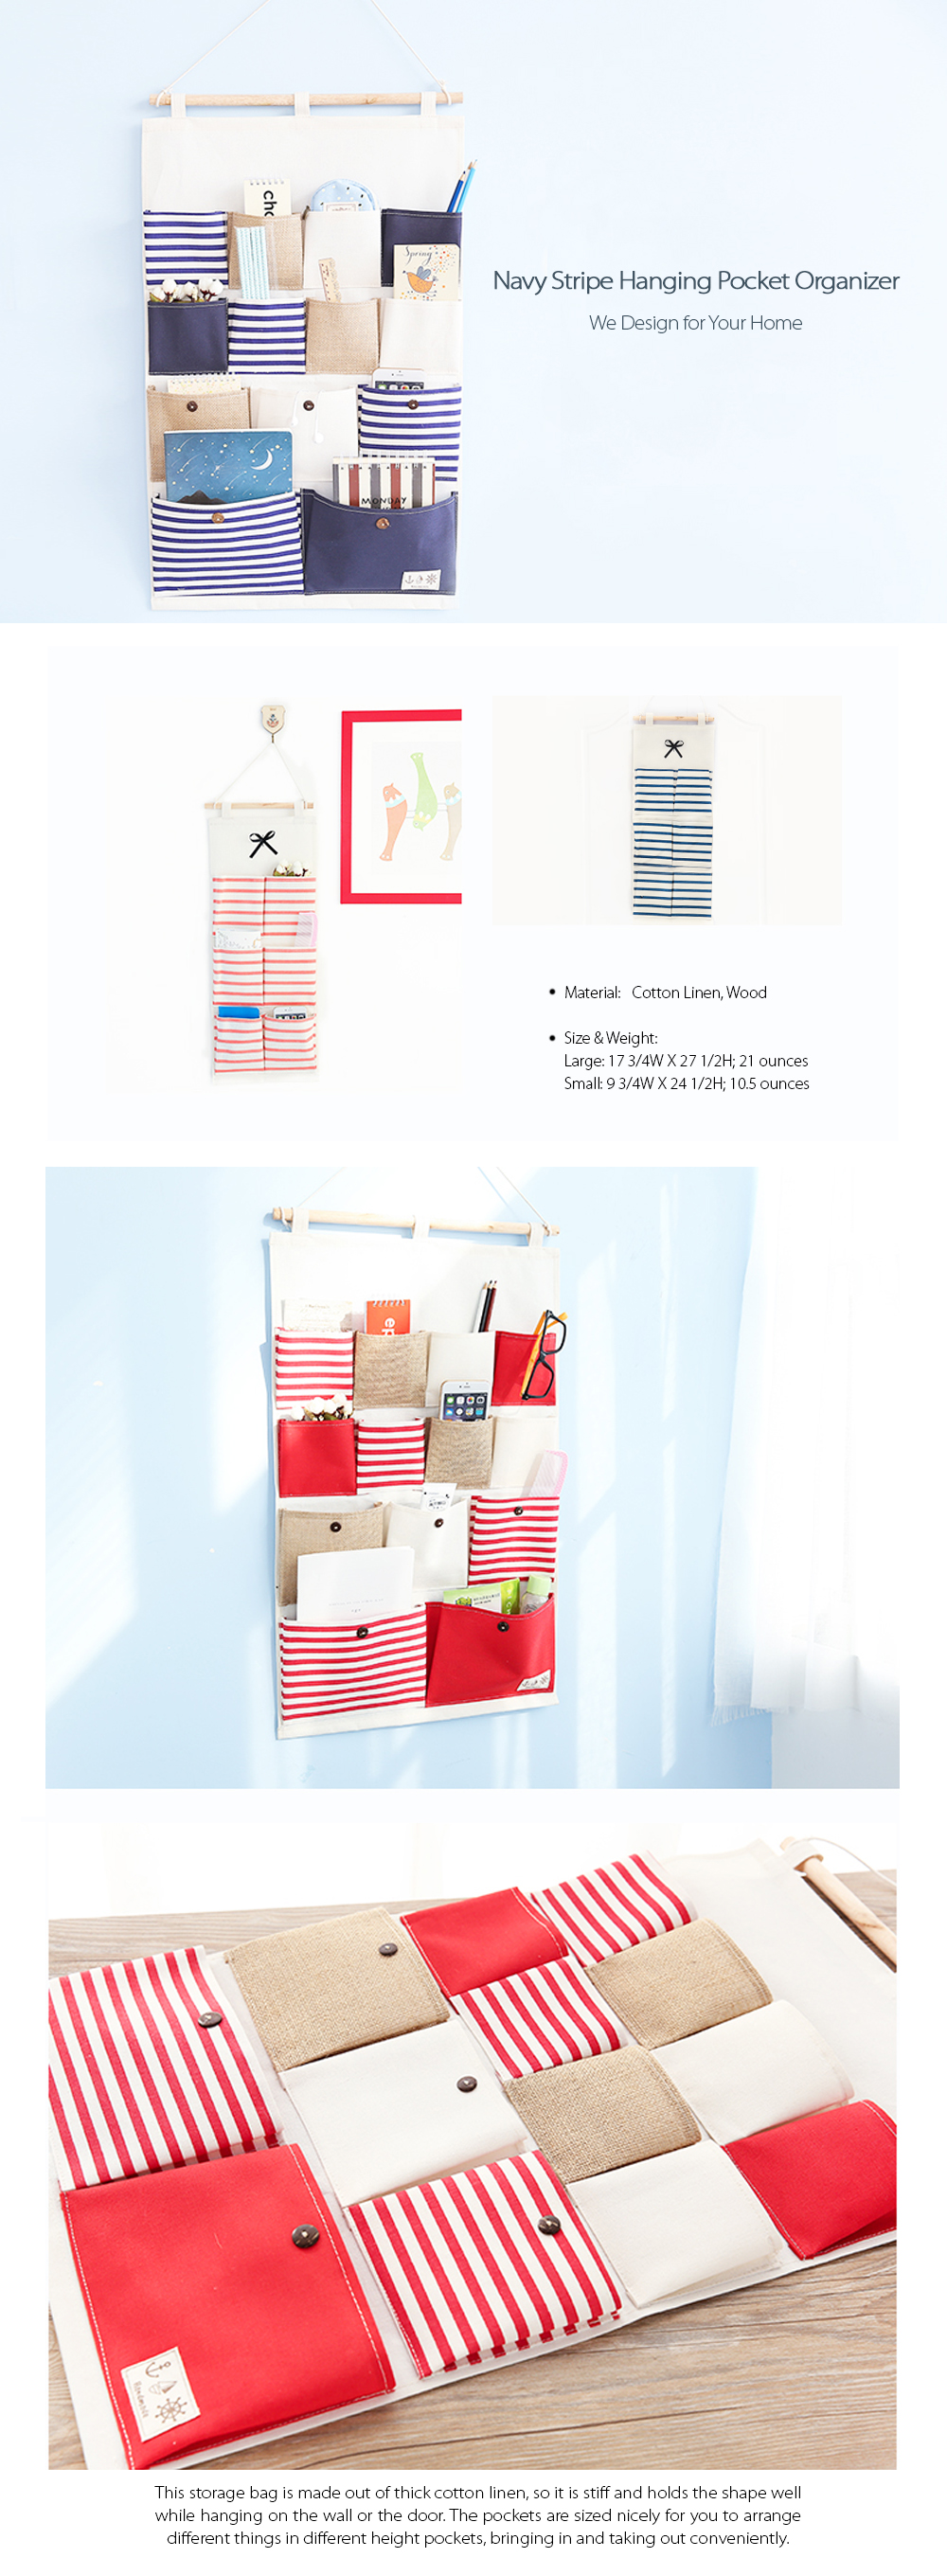 Navy Stripe Organizer Hanging Pocket Organizer